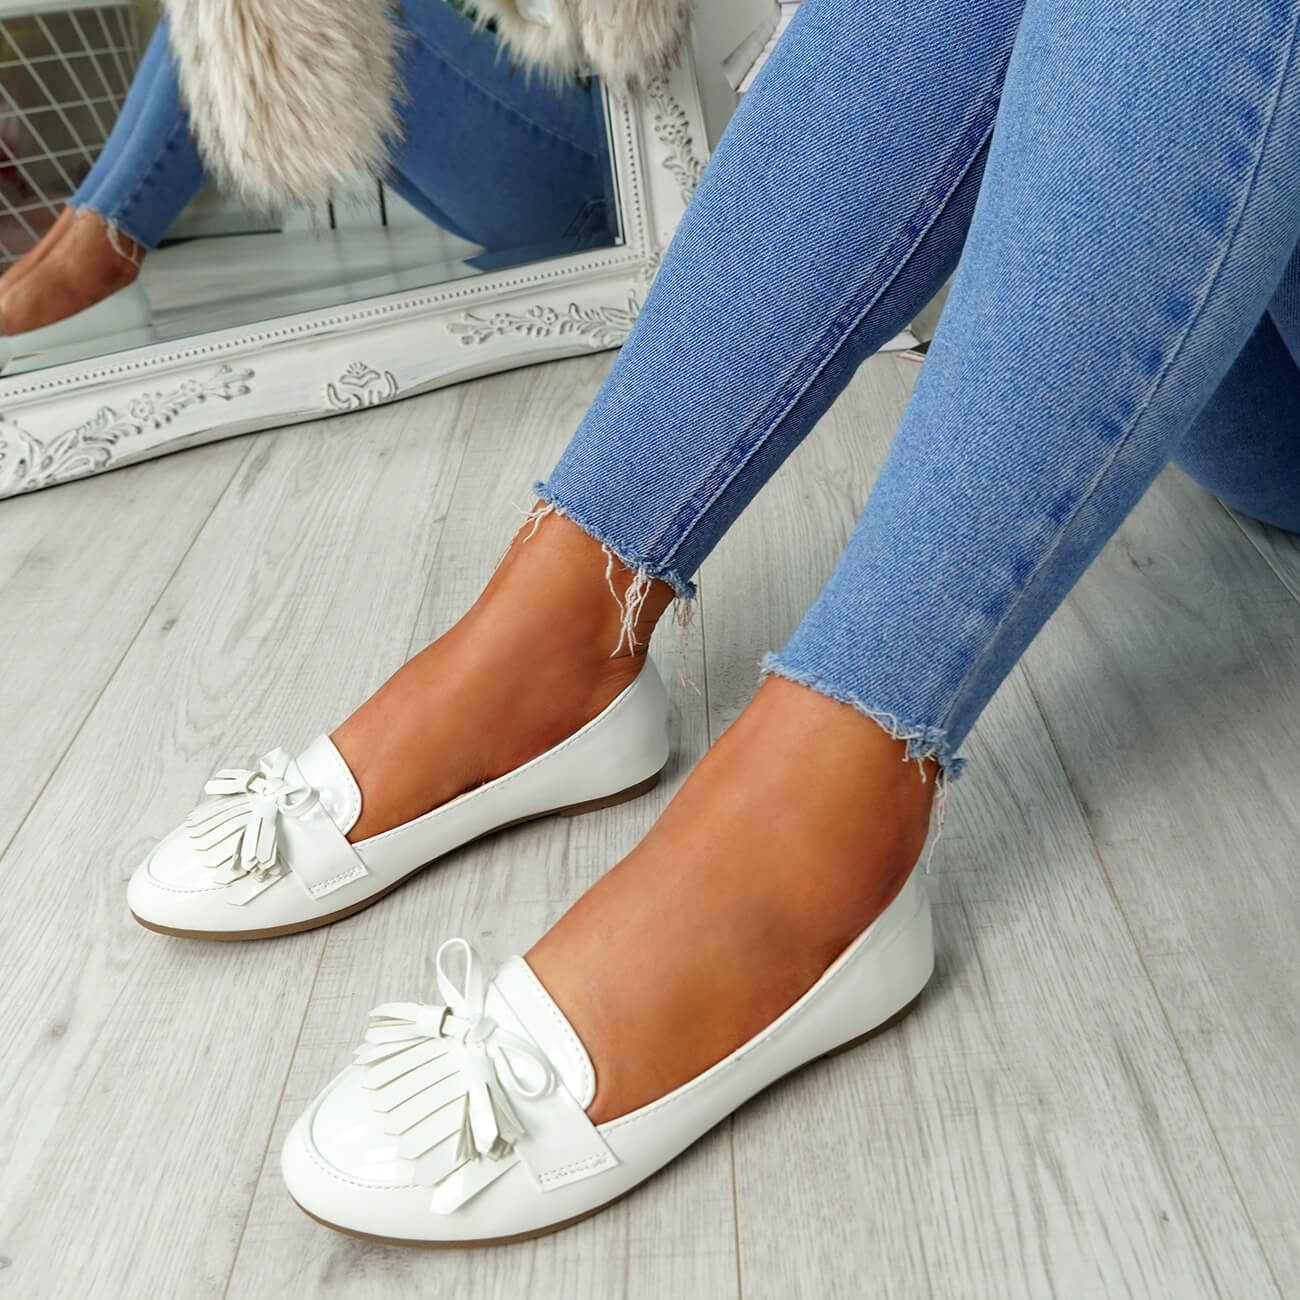 WOMENS-LADIES-FRINGE-BALLERINAS-SLIP-ON-FLAT-DOLLY-PUMPS-CASUAL-SMART-SHOES-SIZE thumbnail 33